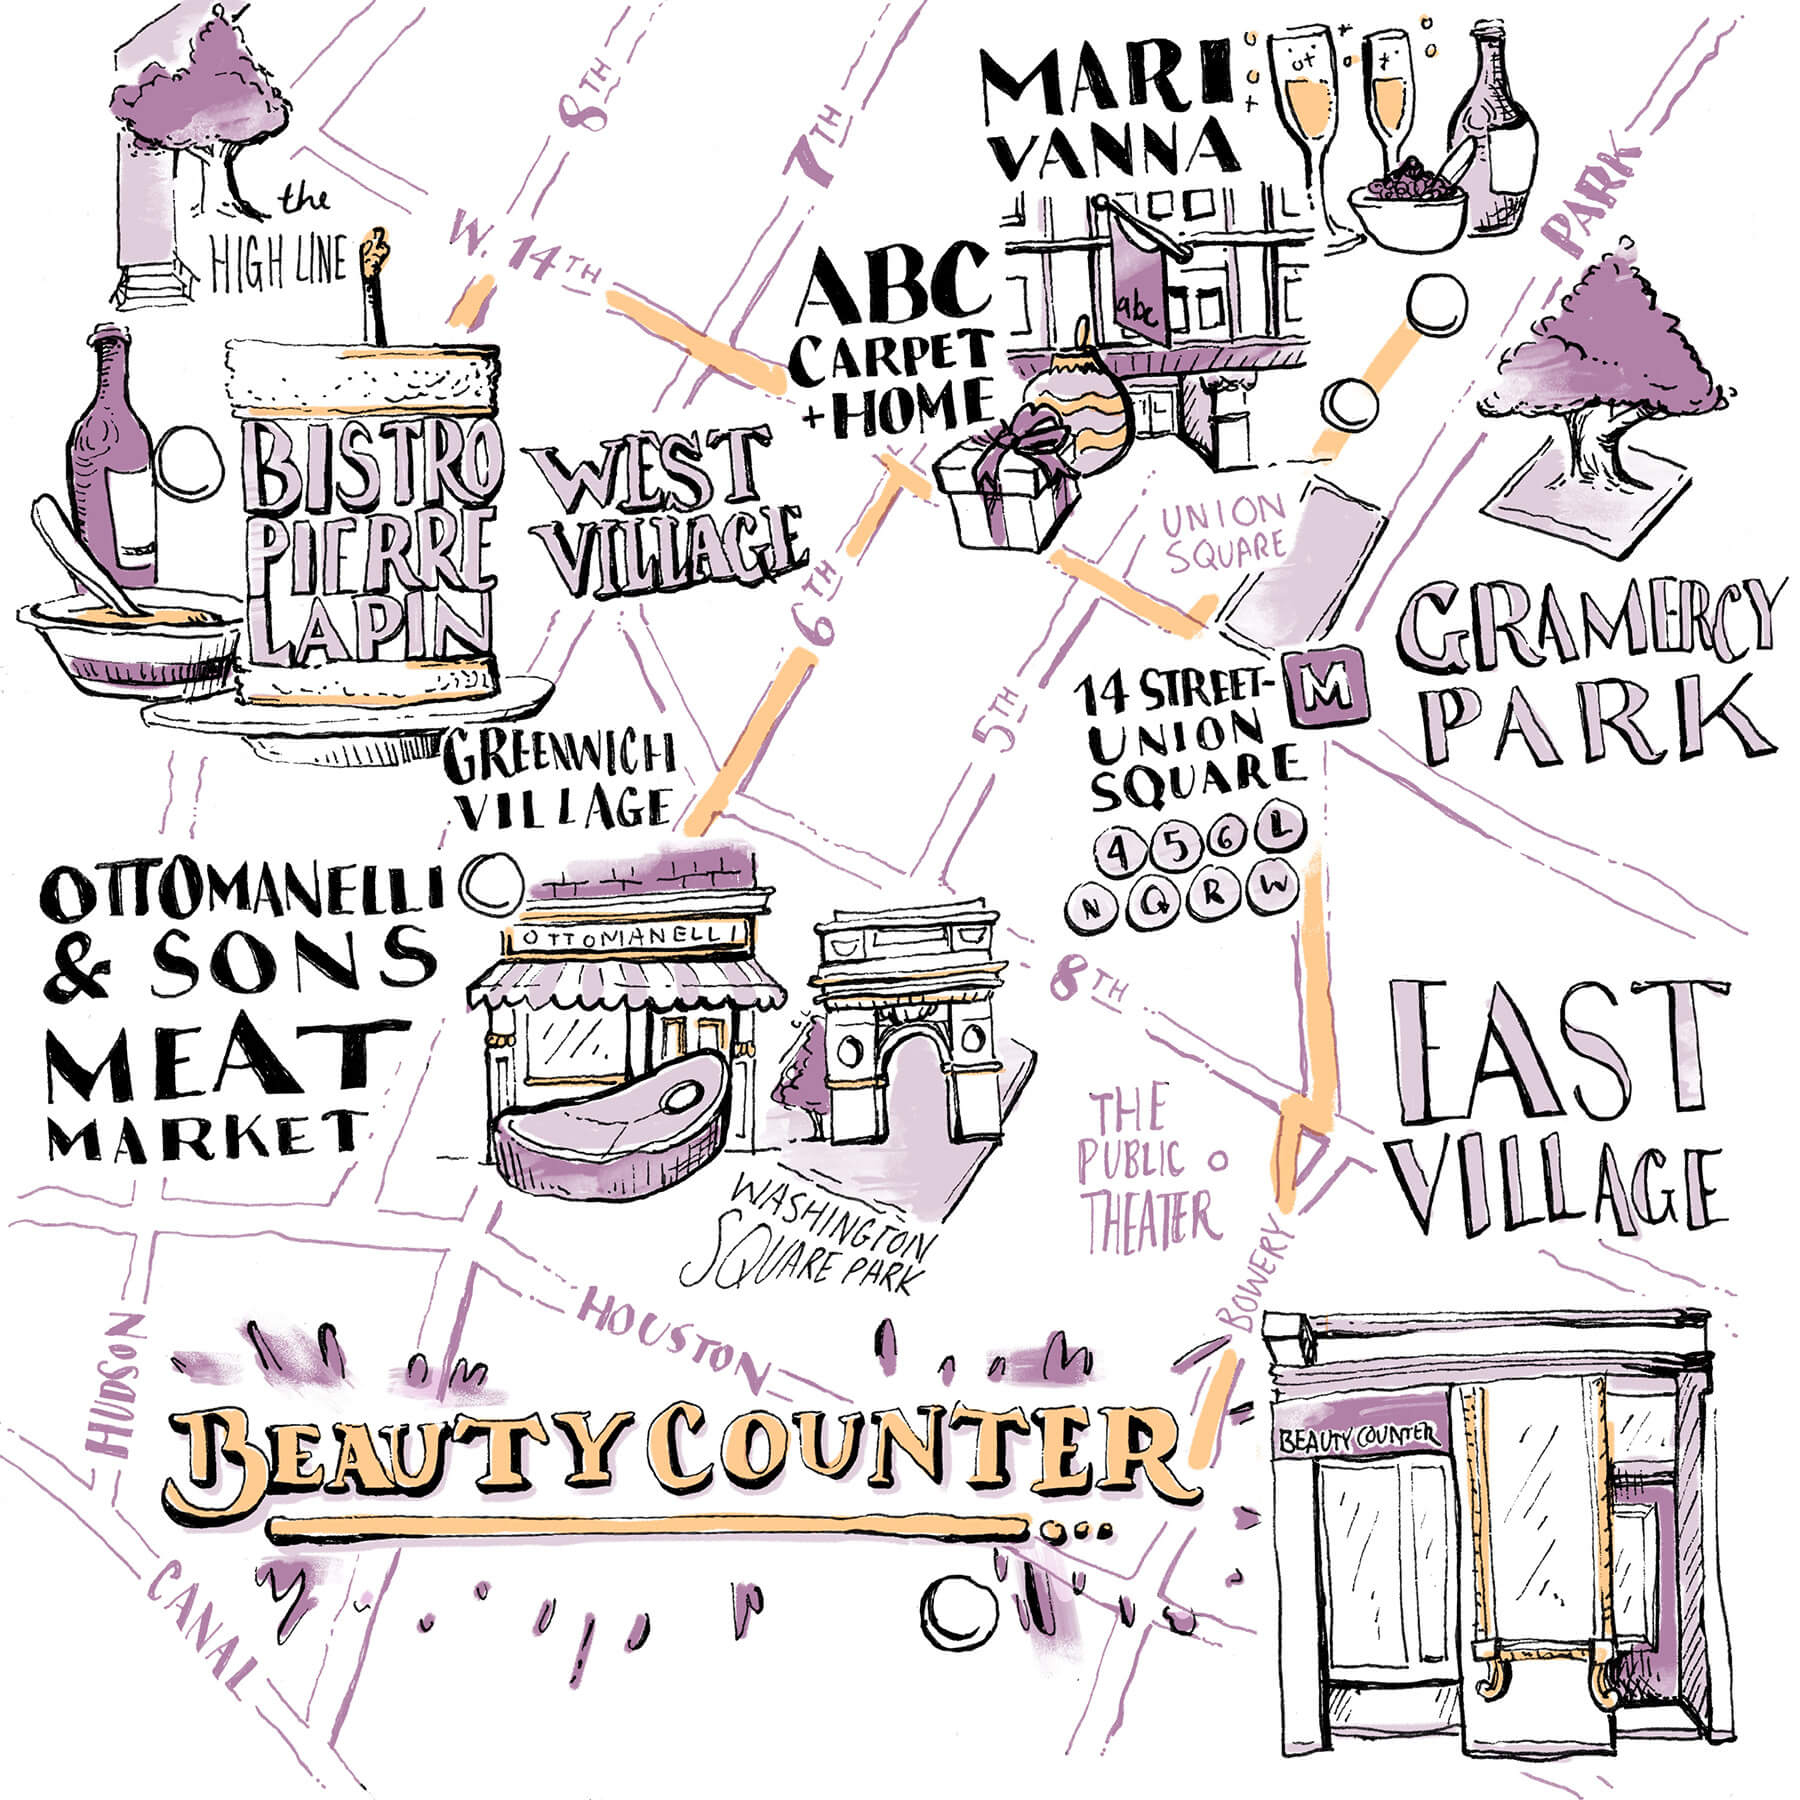 Julia Grossman's Map - Bistro Pierre Lapin, Mari Vanna, Beautycounter, Ottomanelli & Sons Meat Market, ABC Carpet + Home, and more.